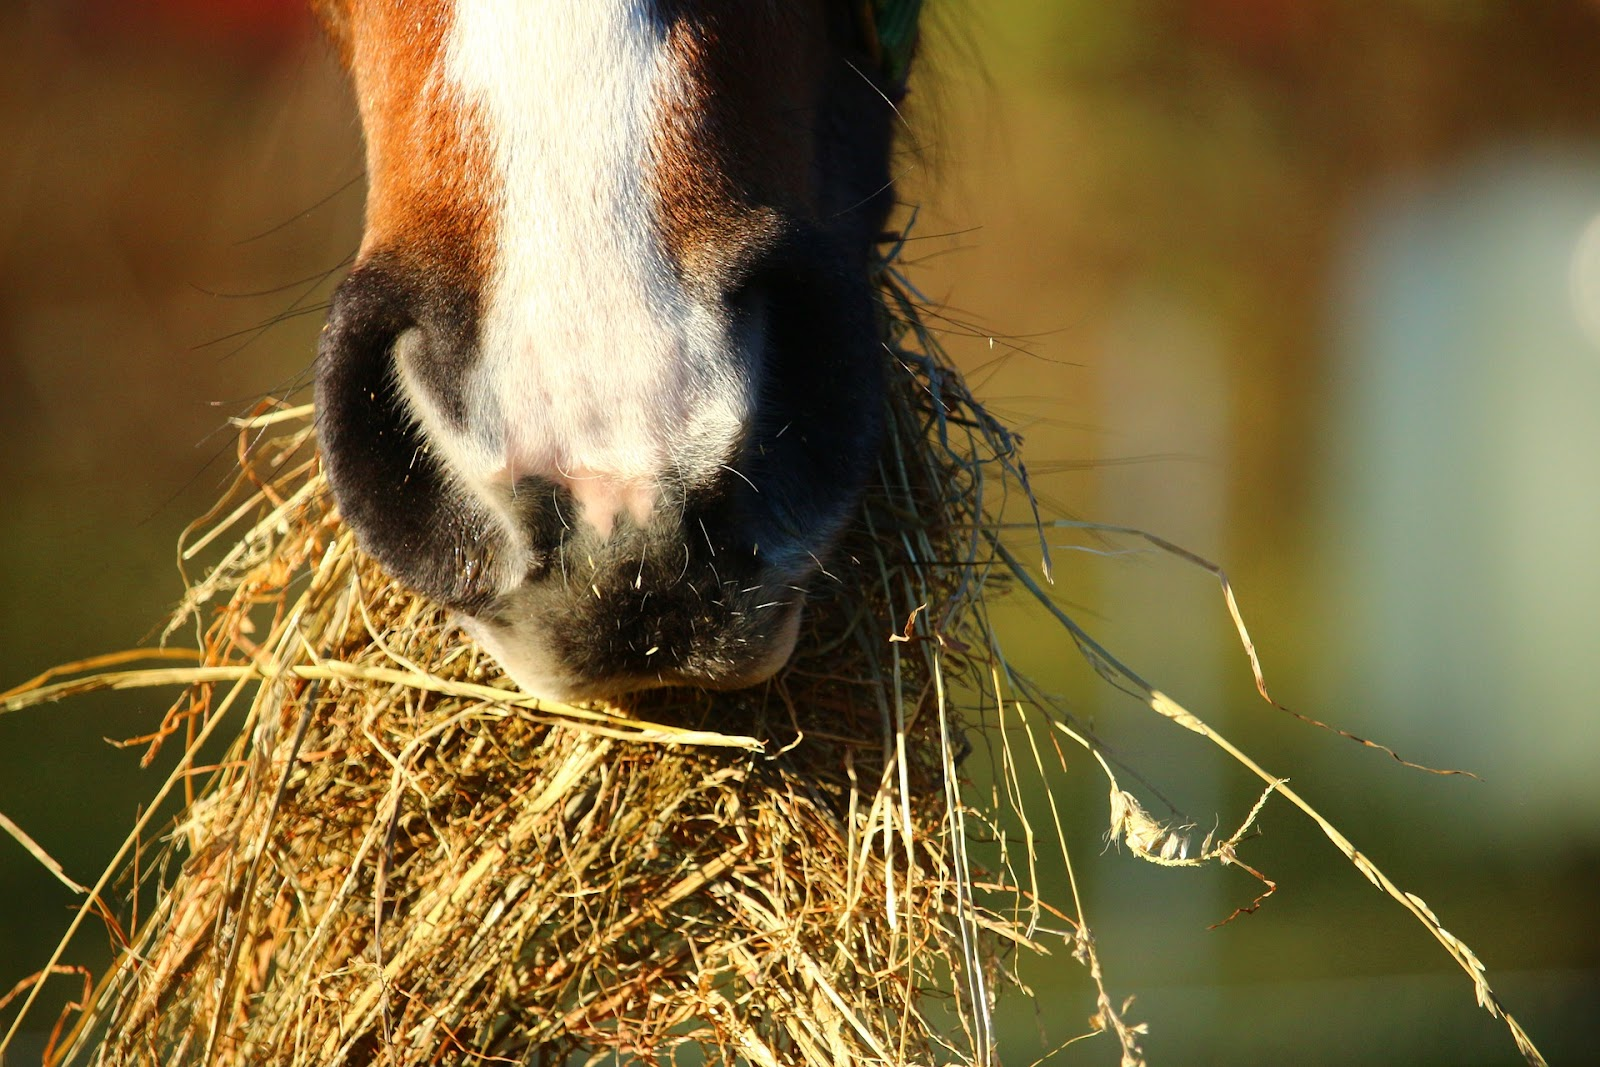 A horse eats a mouthful of hay